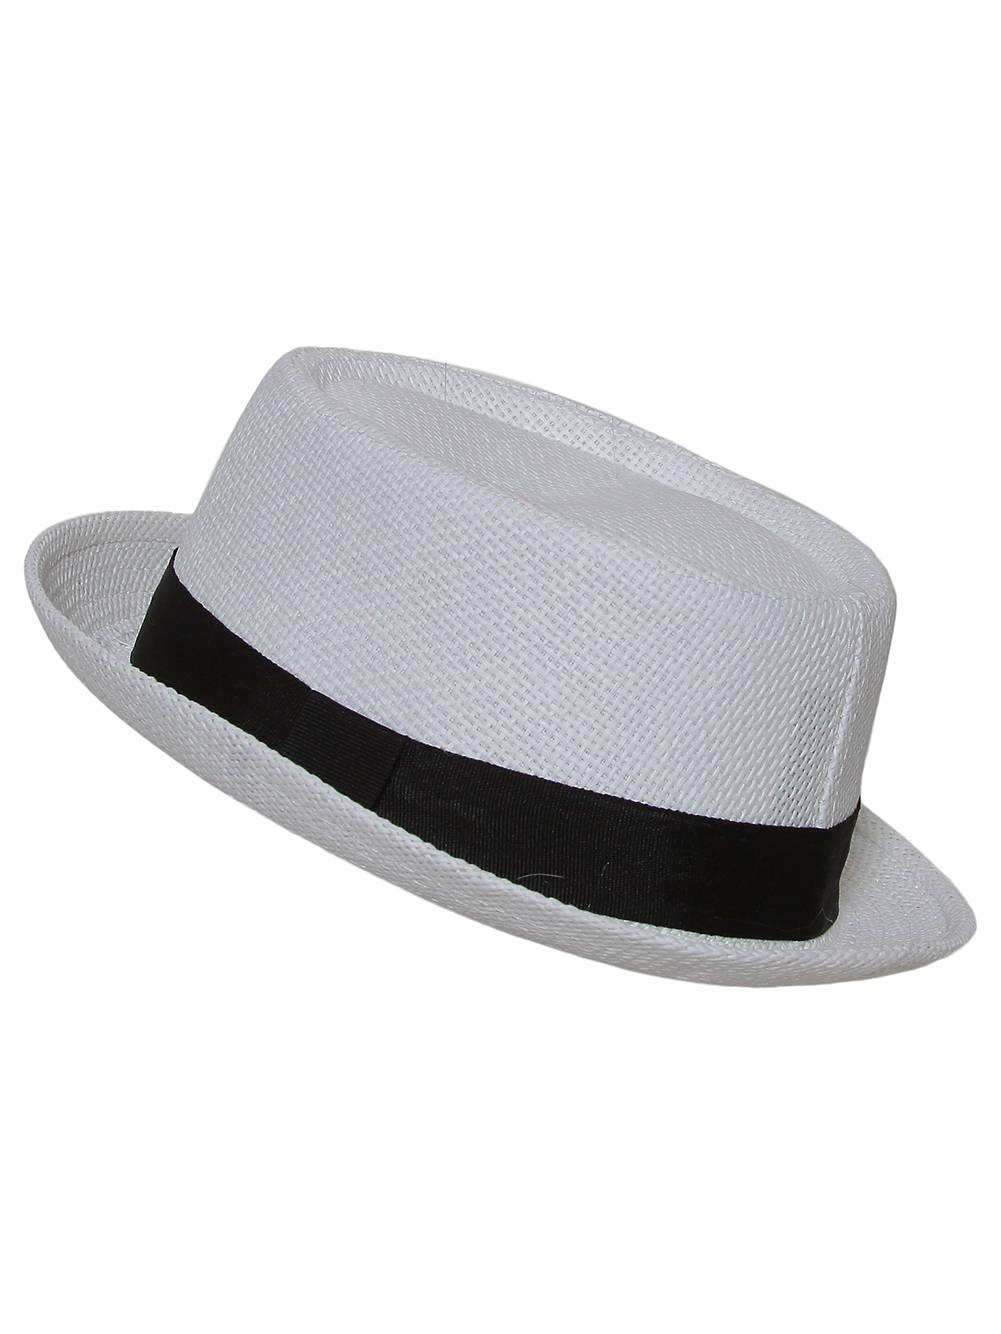 Mens Straw Hats Walmart 6750ea0d634